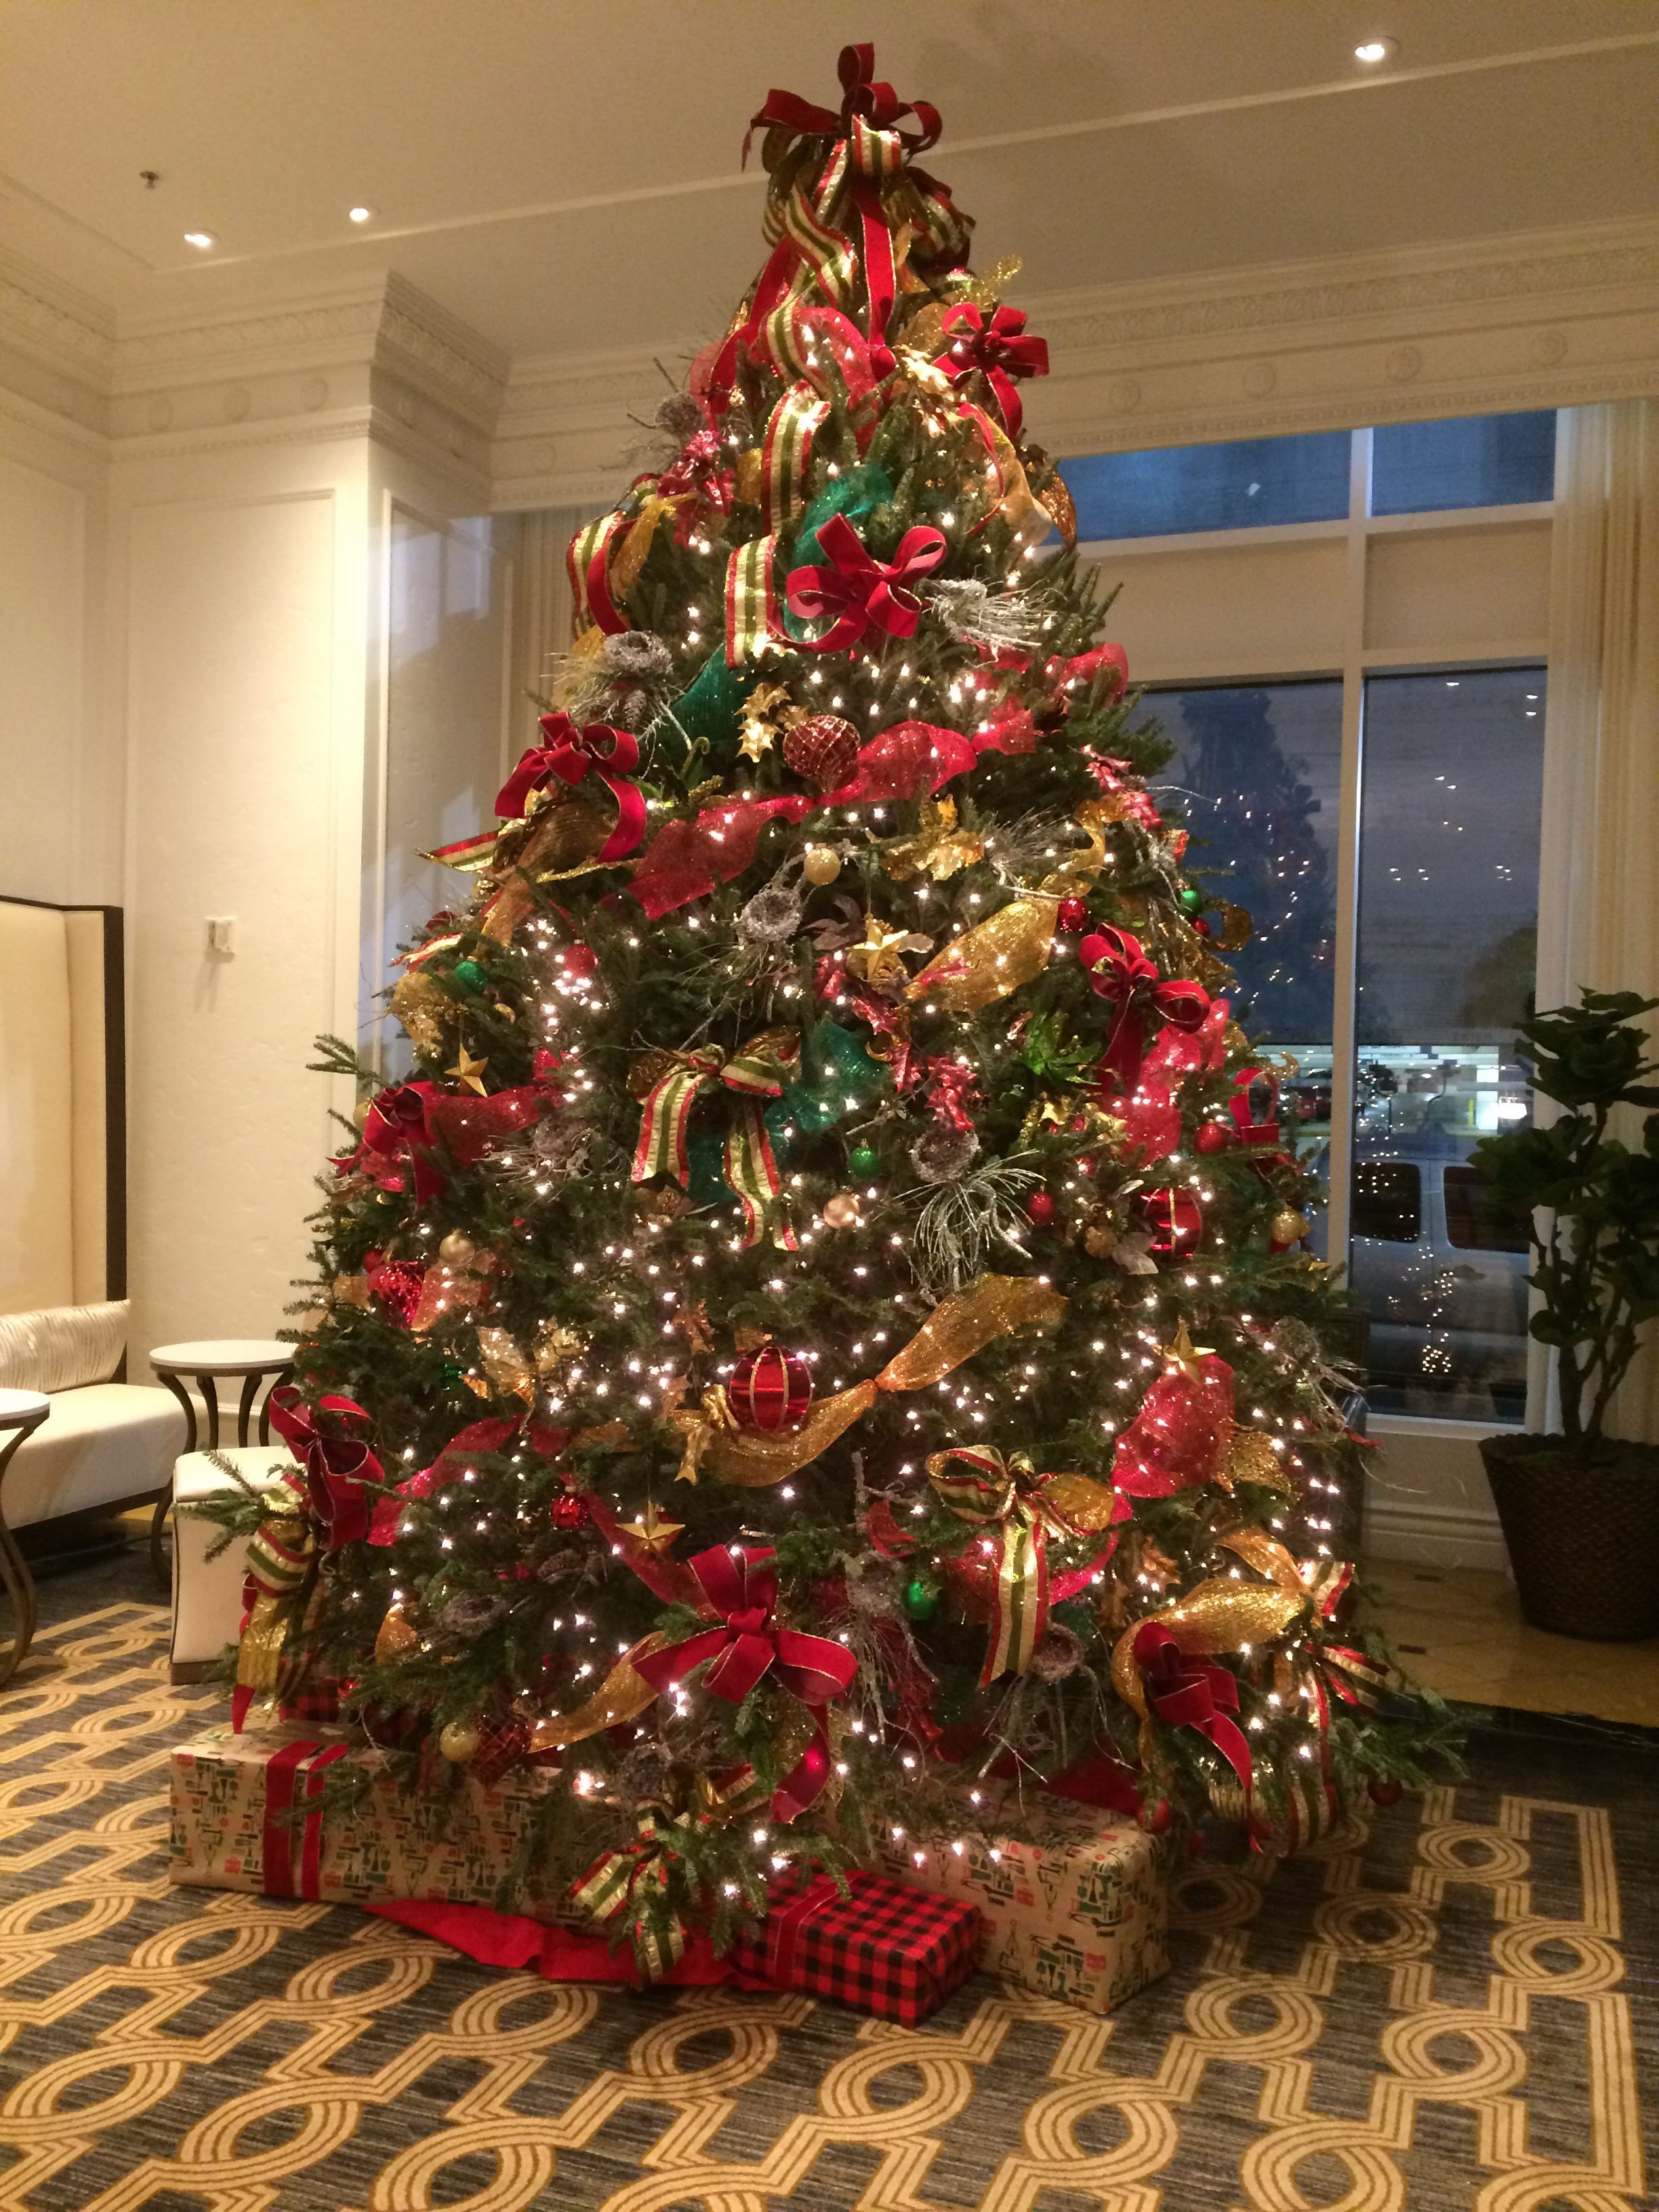 Christmas Trees, Tony Bennett, and New Orleans – contentedkitchen